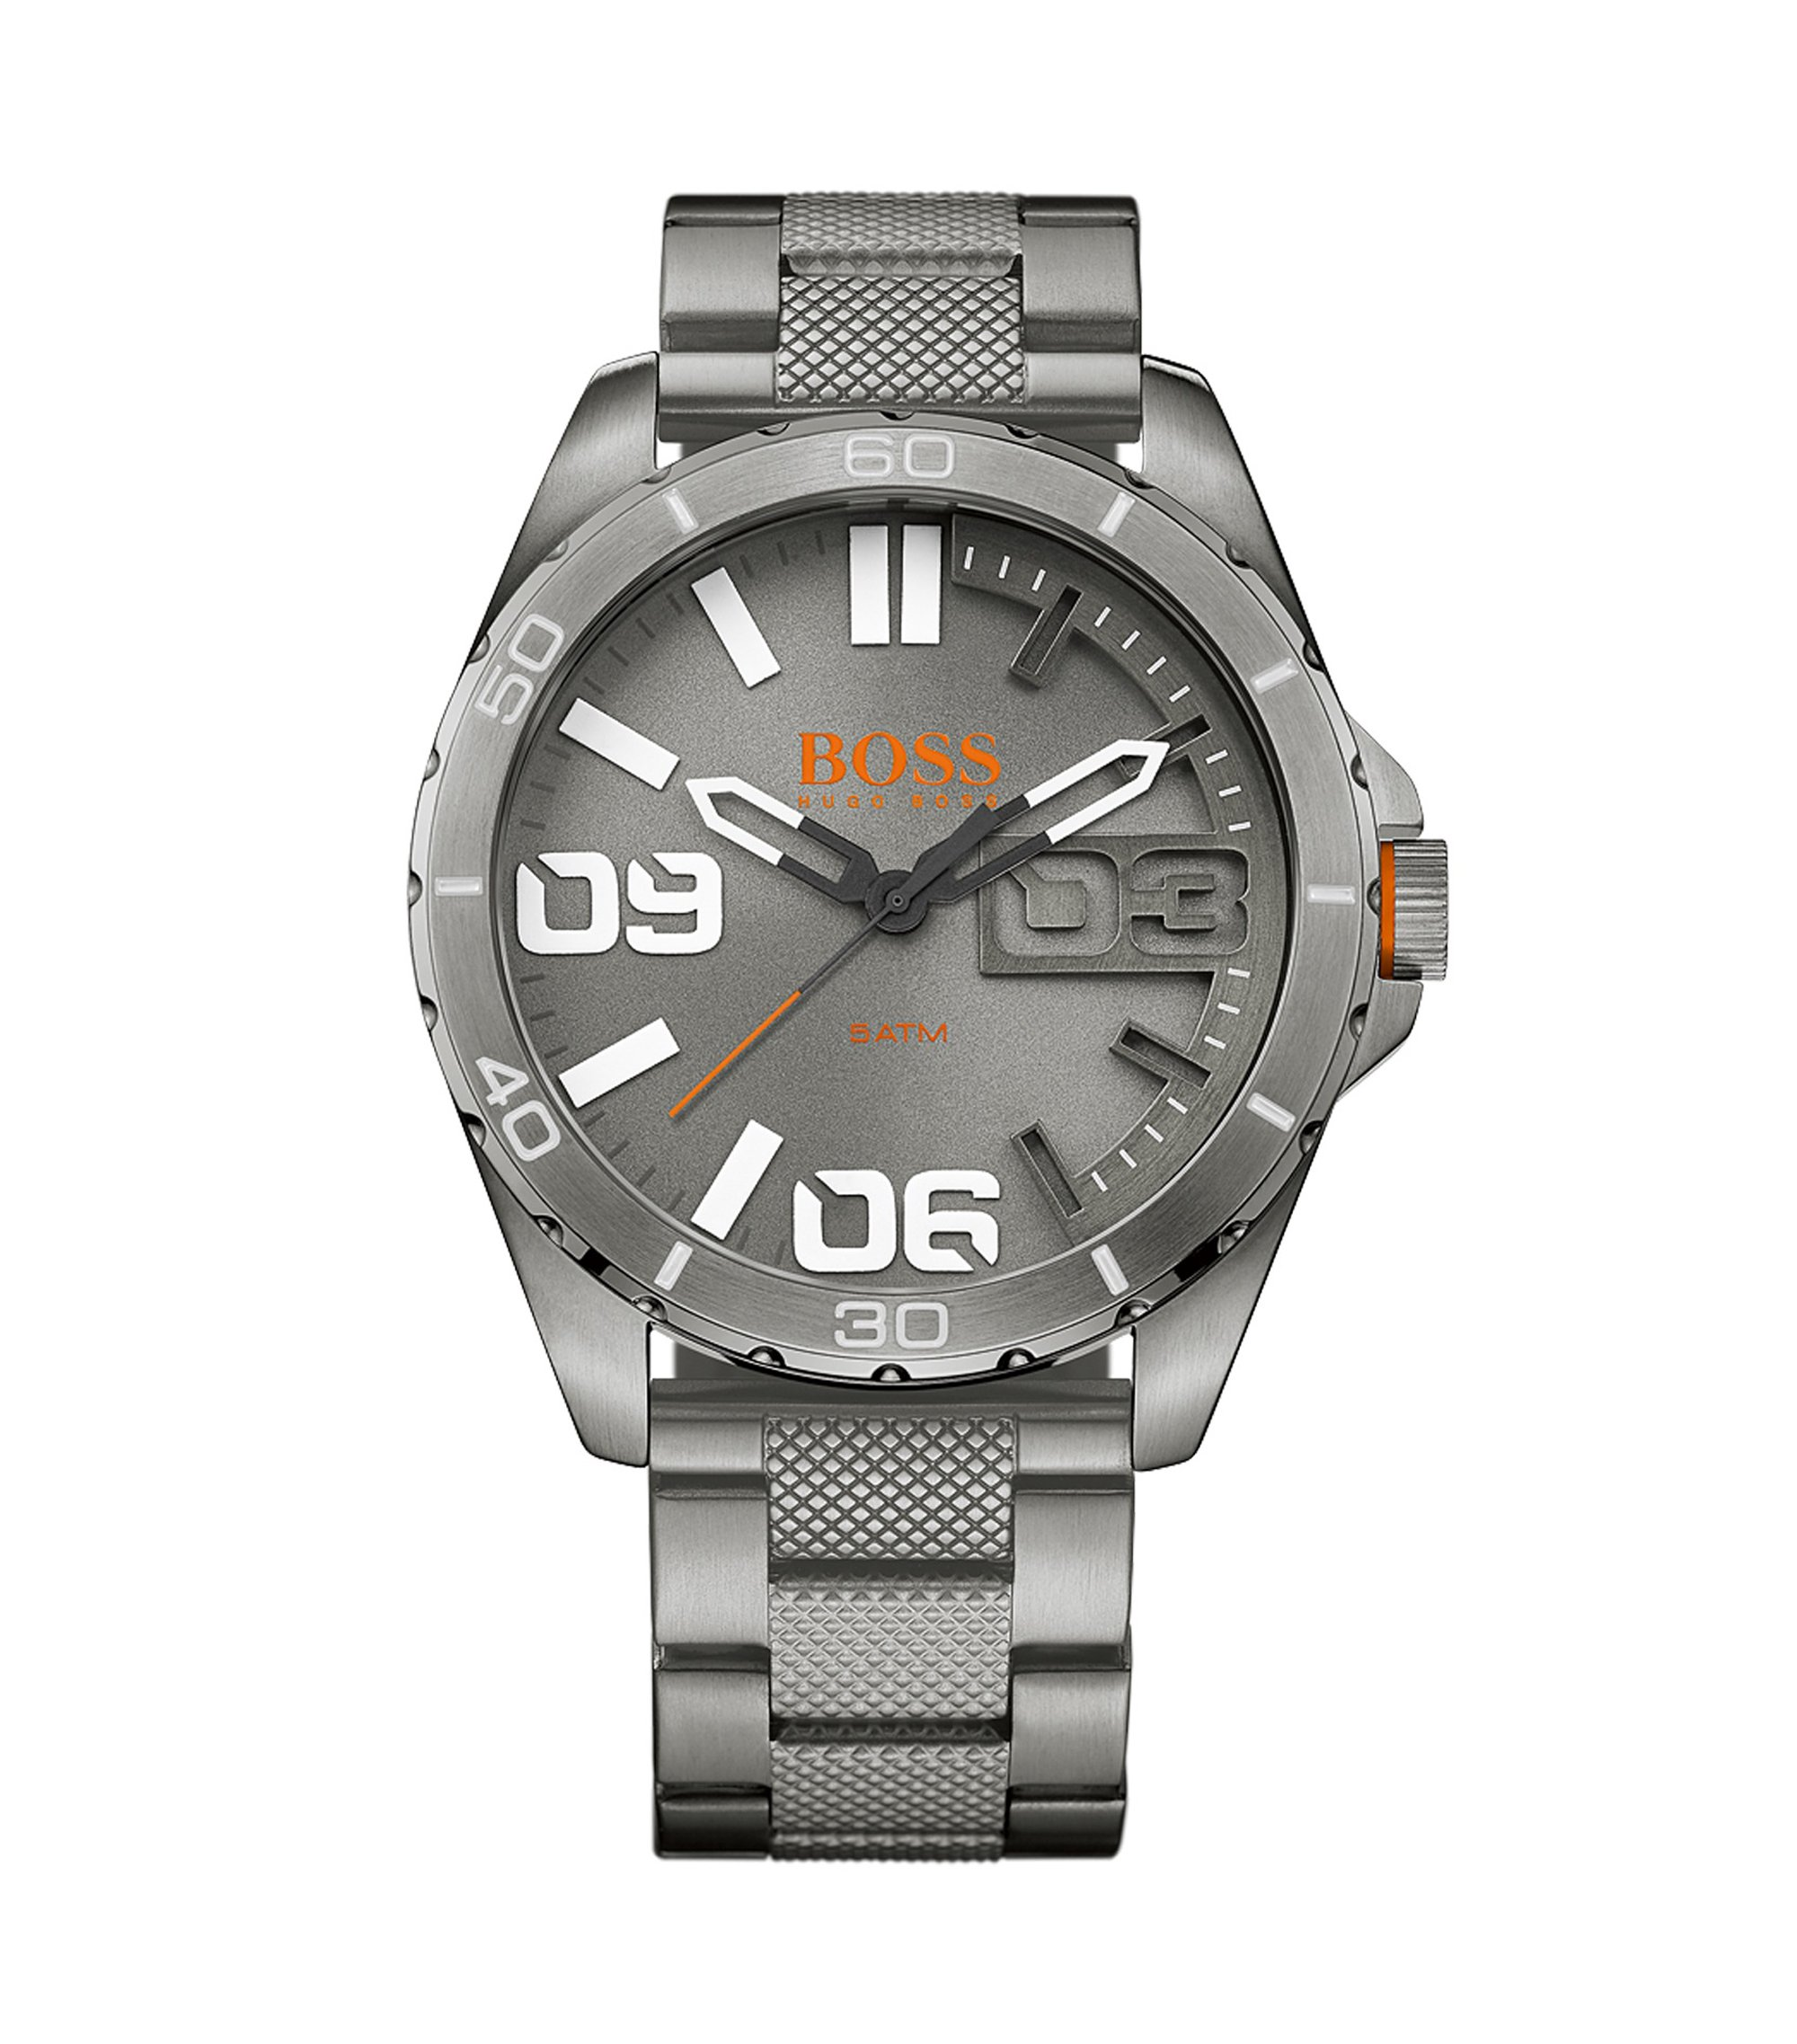 Brushed Stainless Steel Chronograph Watch   1513289, Assorted-Pre-Pack